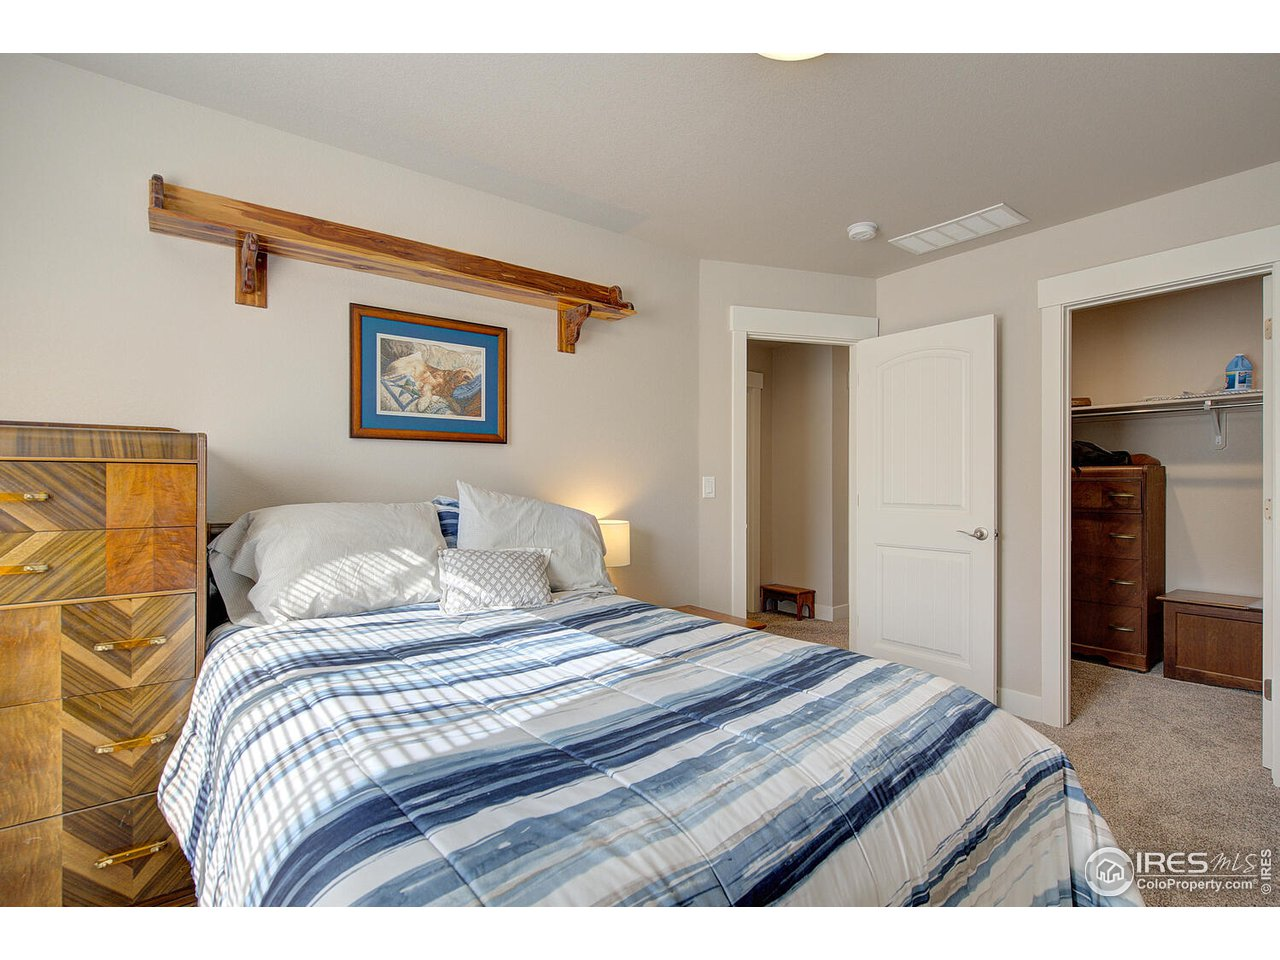 2nd Bedroom also has large walk in closet